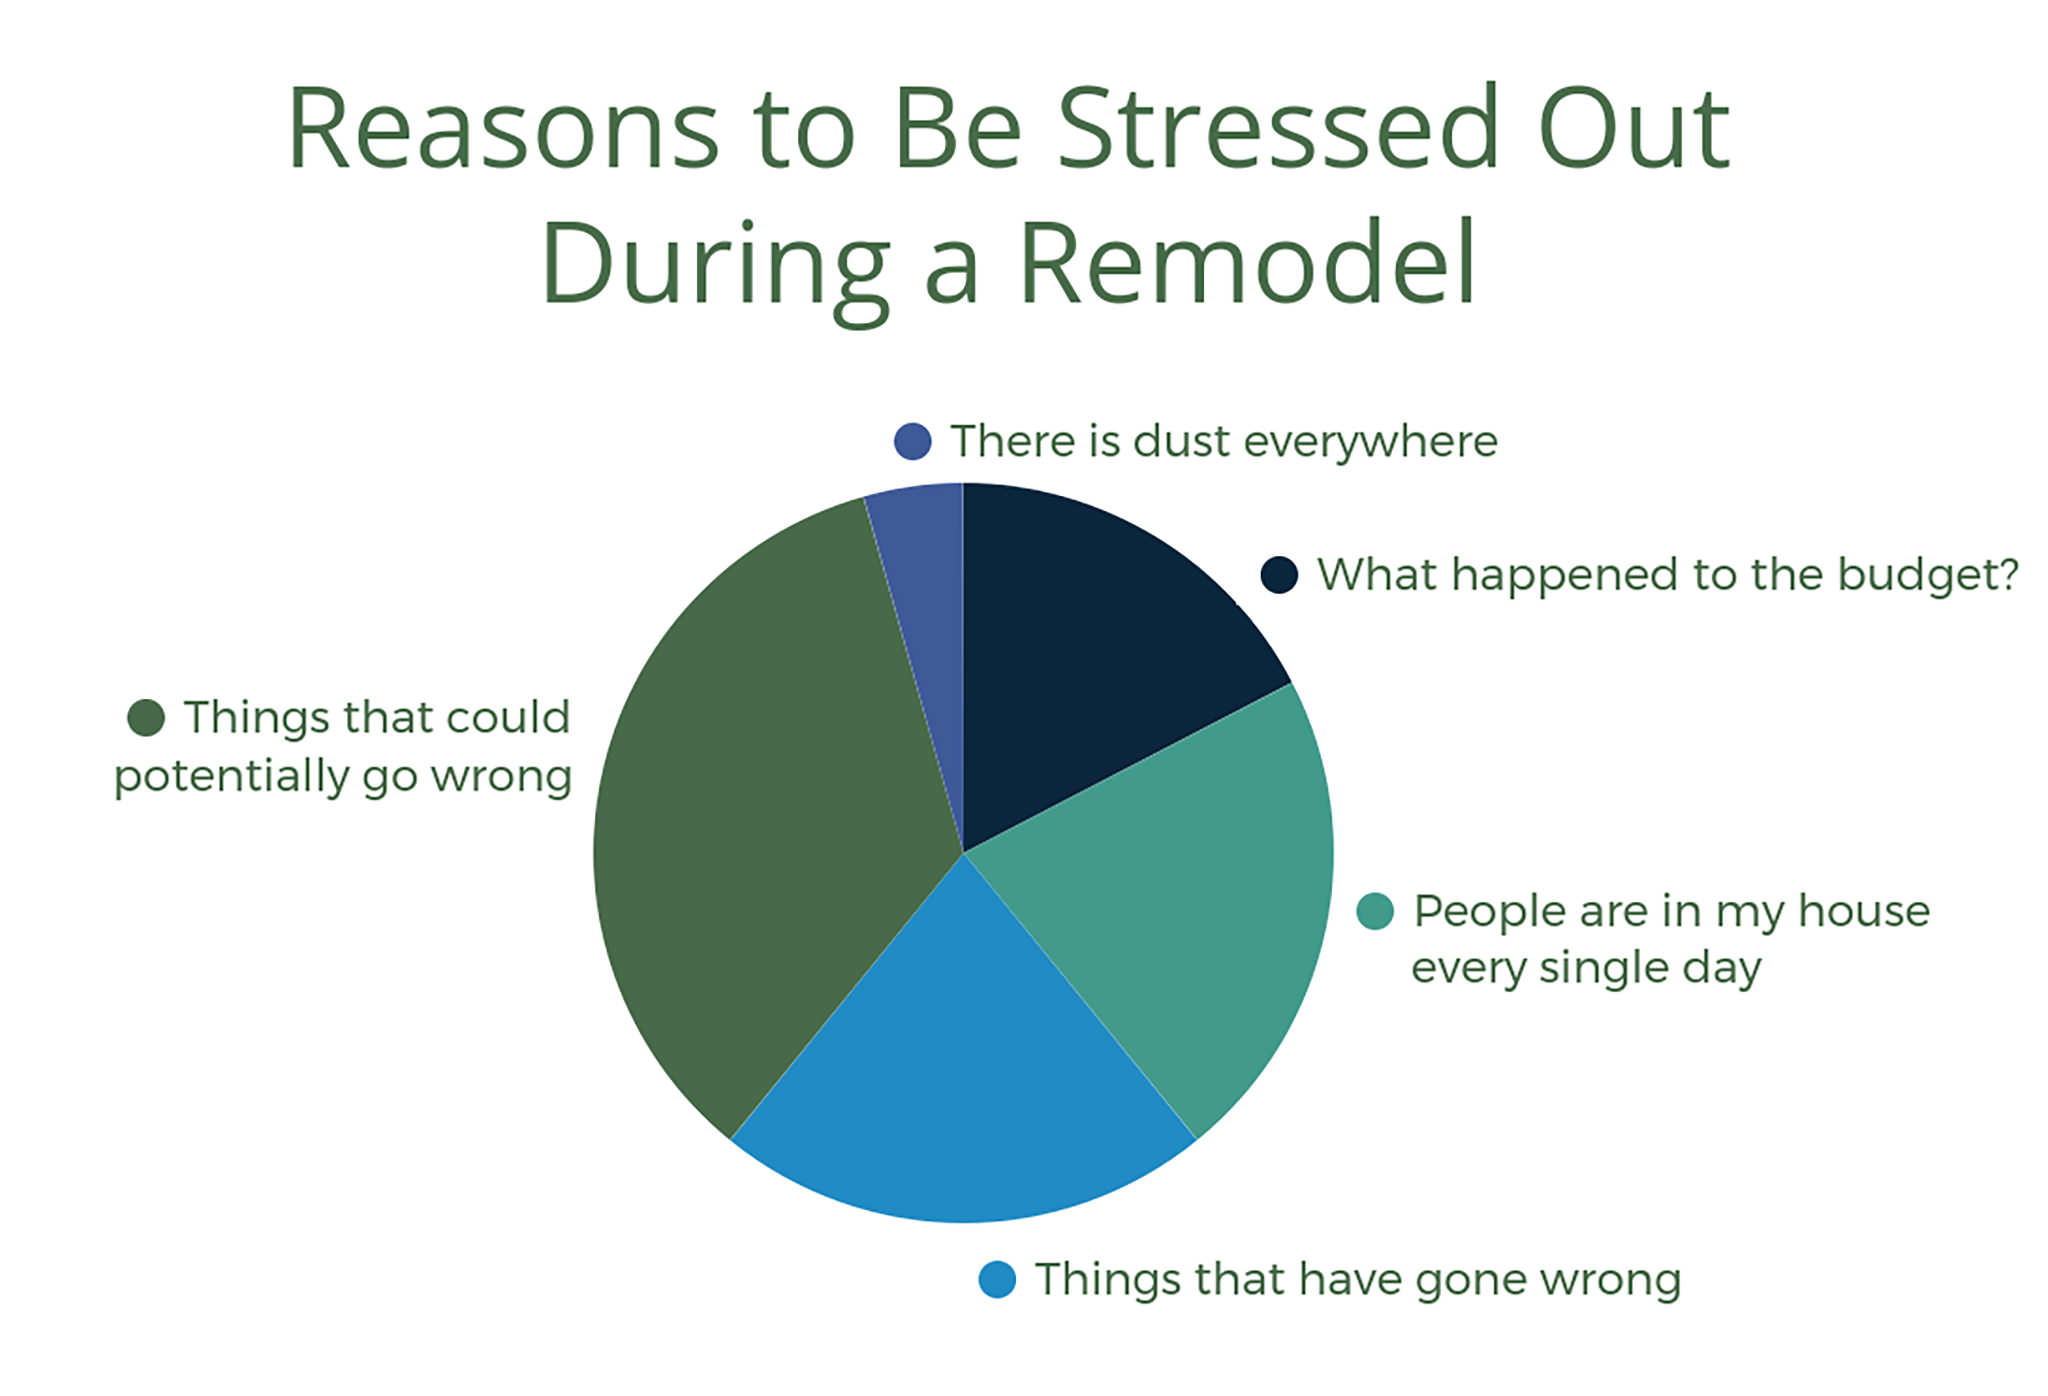 Reasons to be stressed out during a remodel